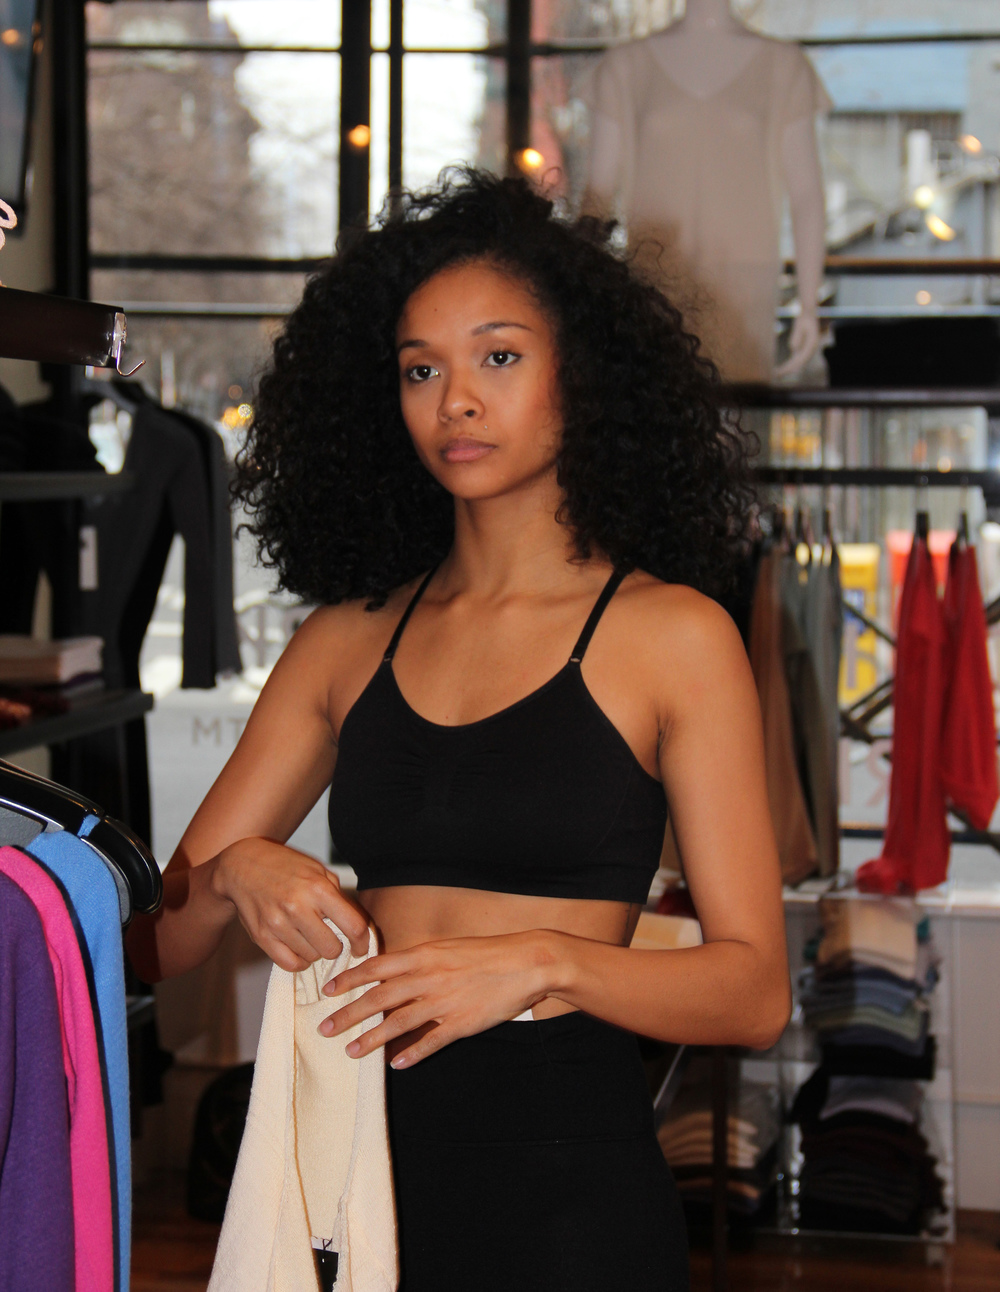 Kimberely, Model and Dancer at the  KD New York Boutique  (339 Lafayette @ Bleecker)